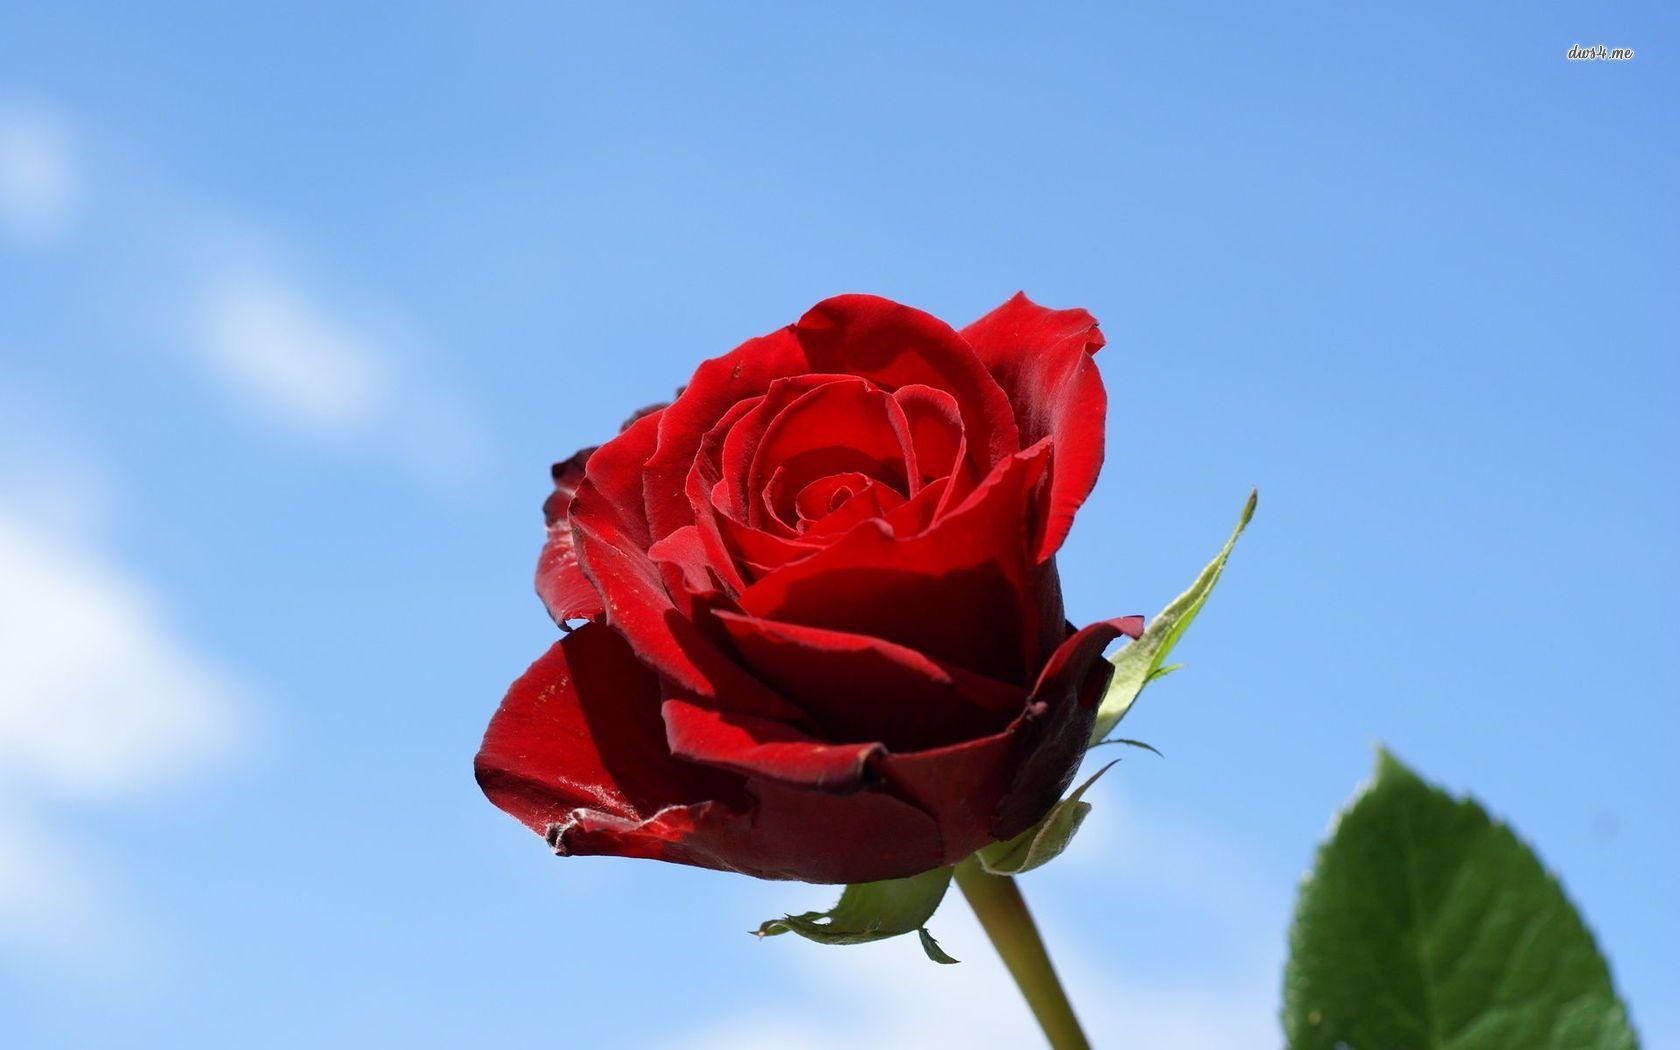 Single Rose Wallpapers: Red Rose Flowers Wallpapers